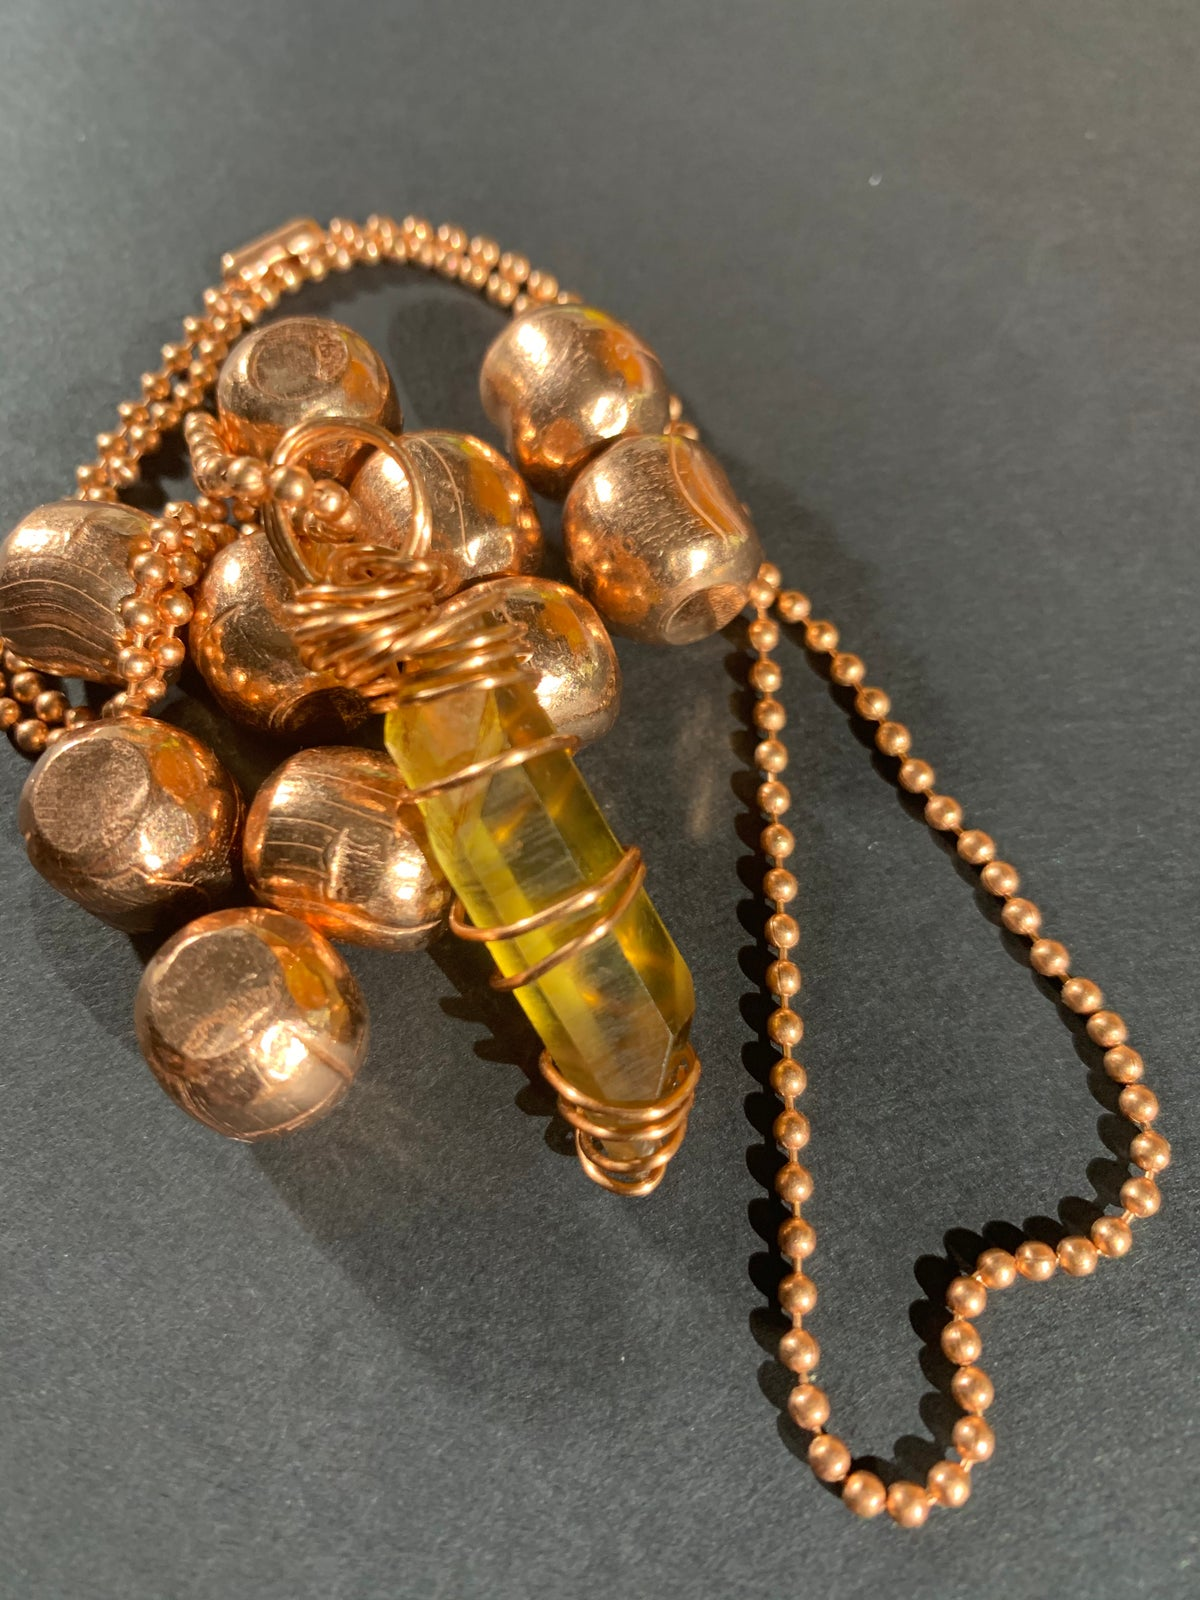 COPPER WRAPPED CITRINE NECKLACE -A